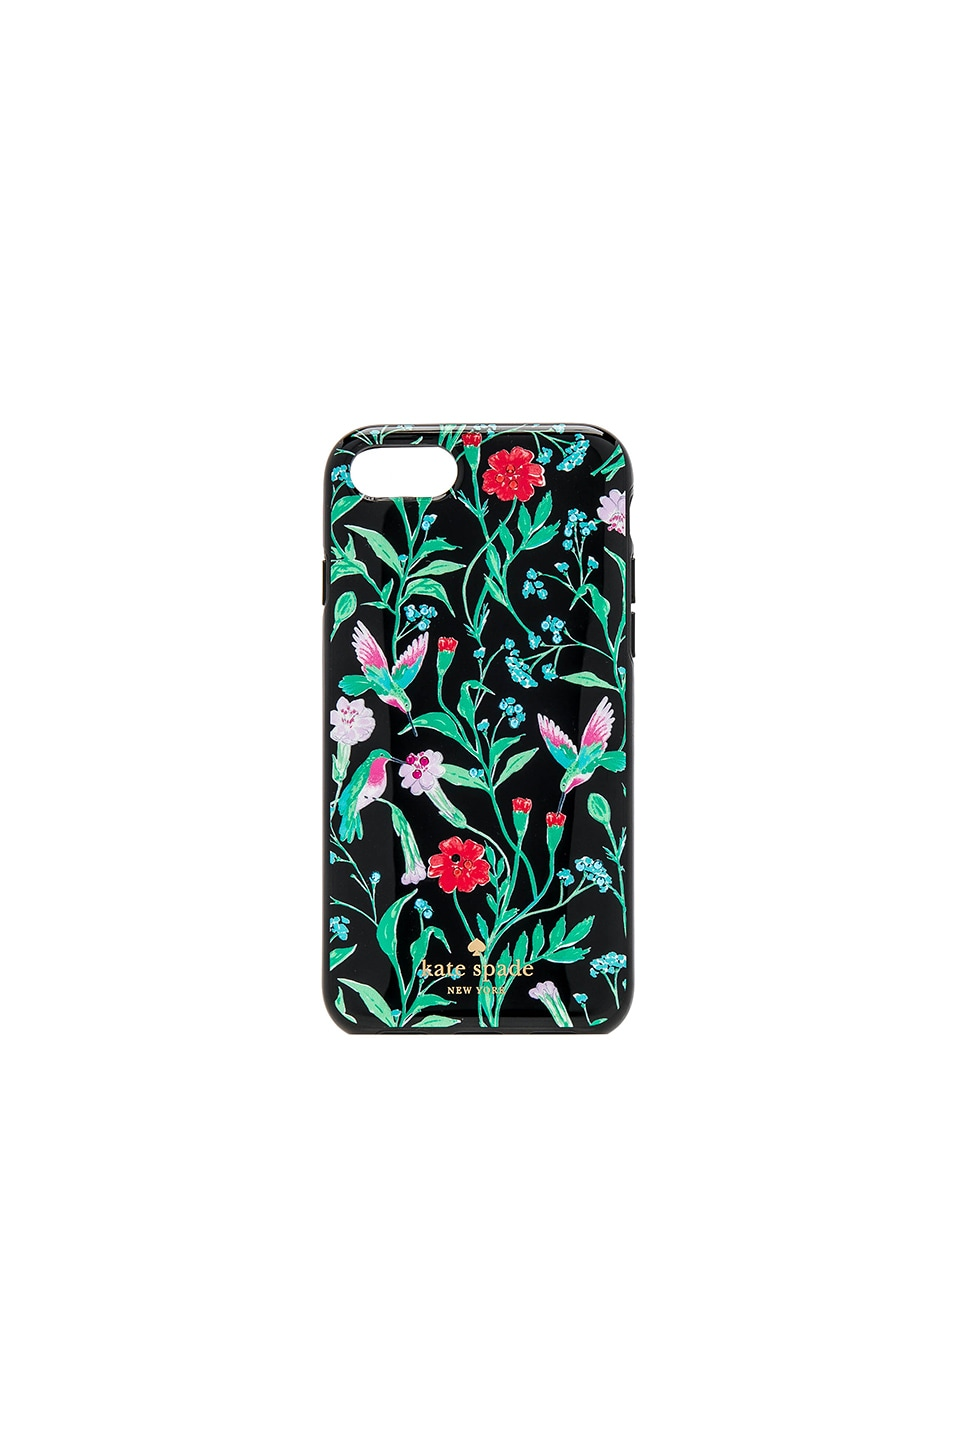 Jeweled Jardin iPhone 7 Case by Kate Spade New York